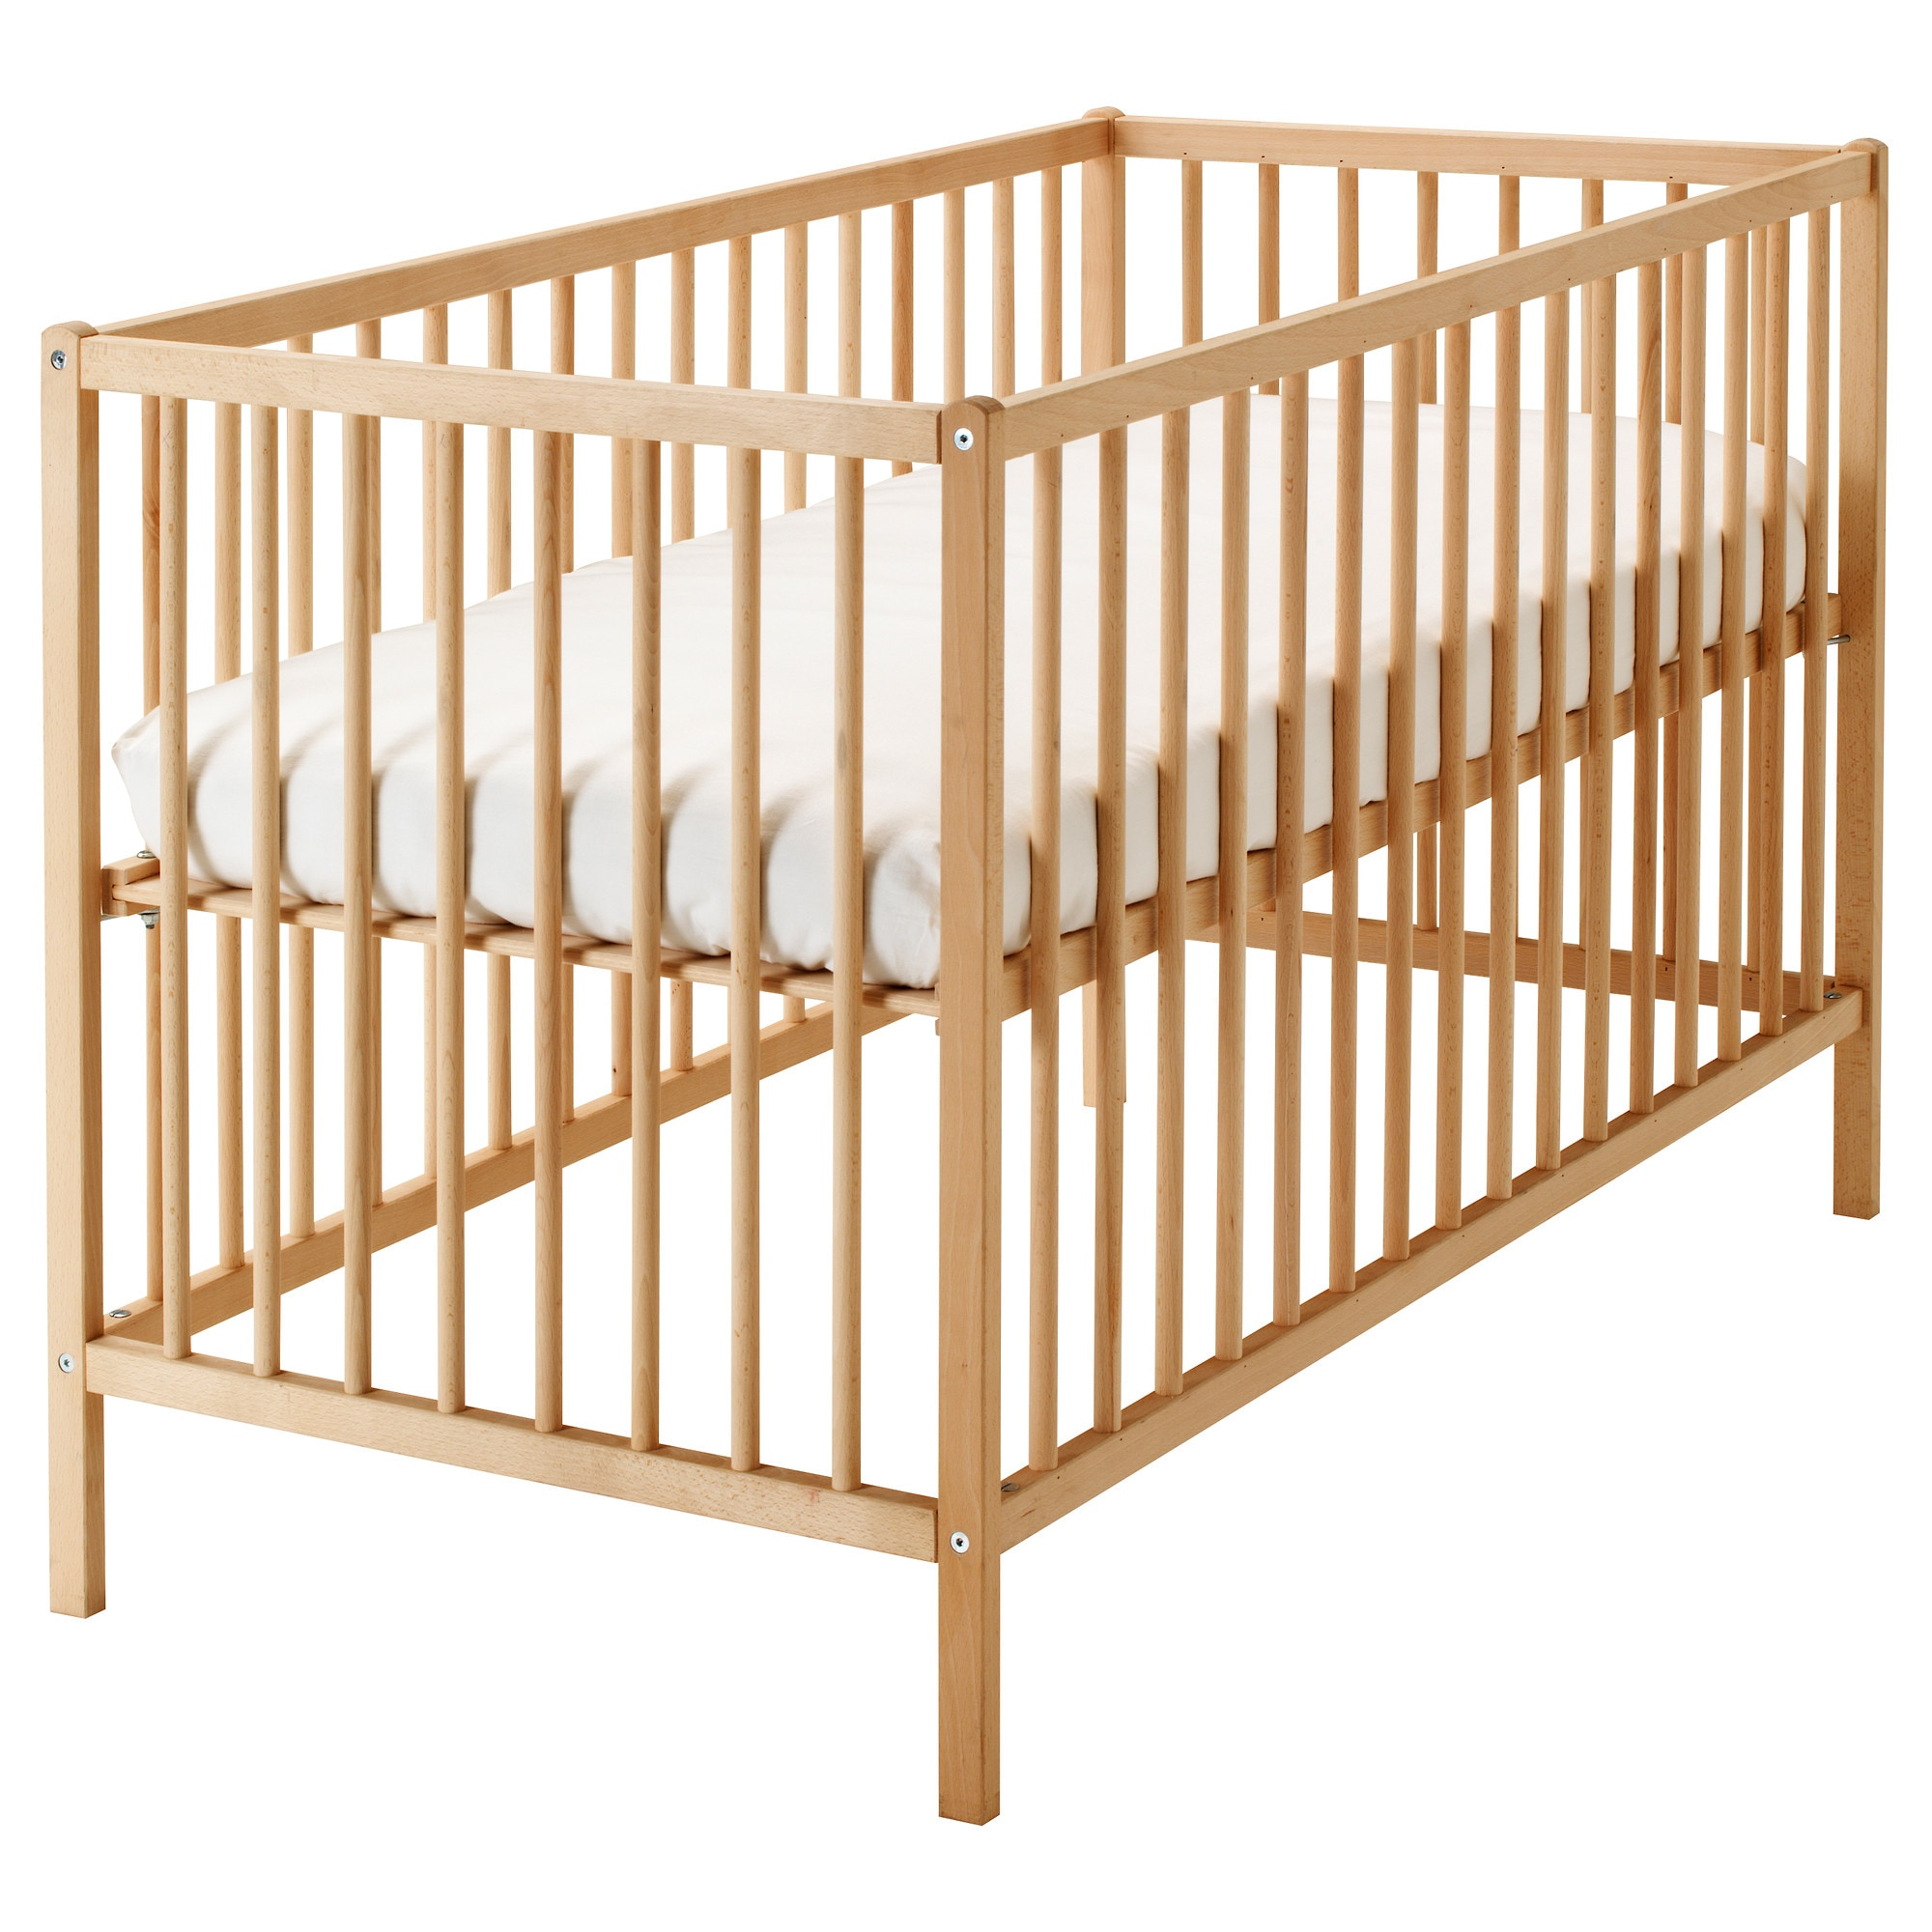 Baby bed extension uk - Sniglar Crib Beech Length 53 7 8 Width 29 1